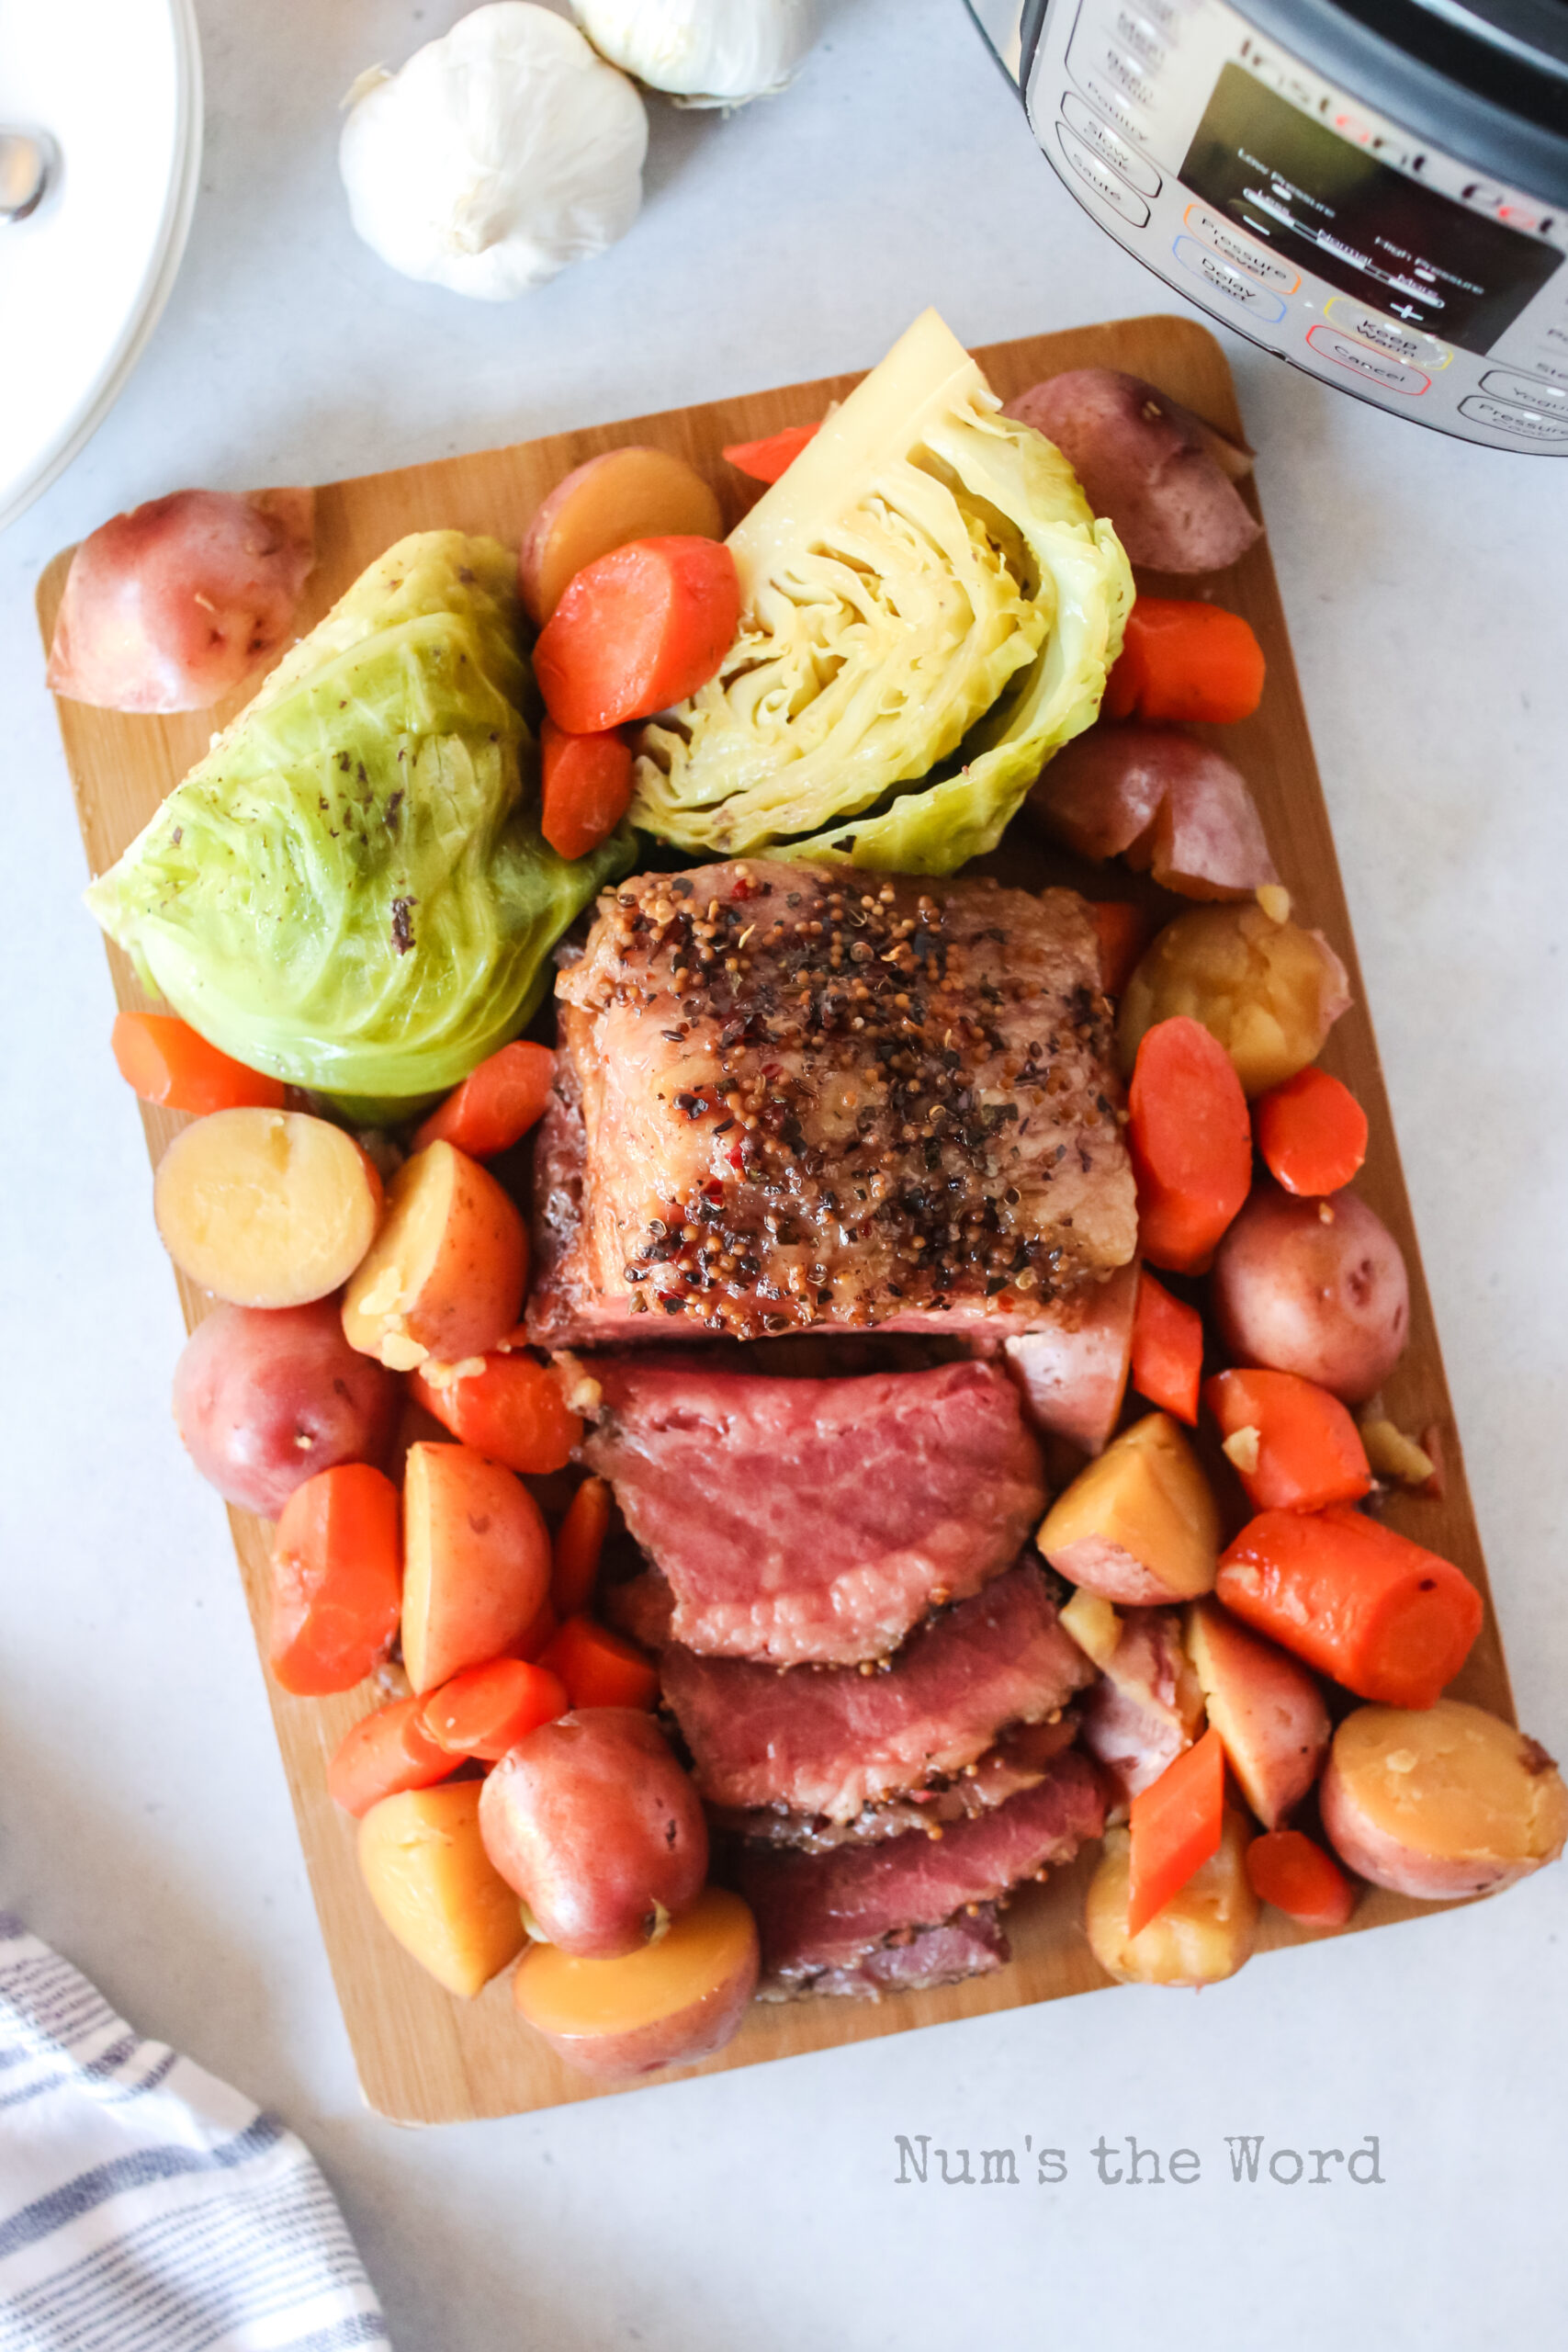 corned beef laid out on a cutting board with cabbage and veggies.